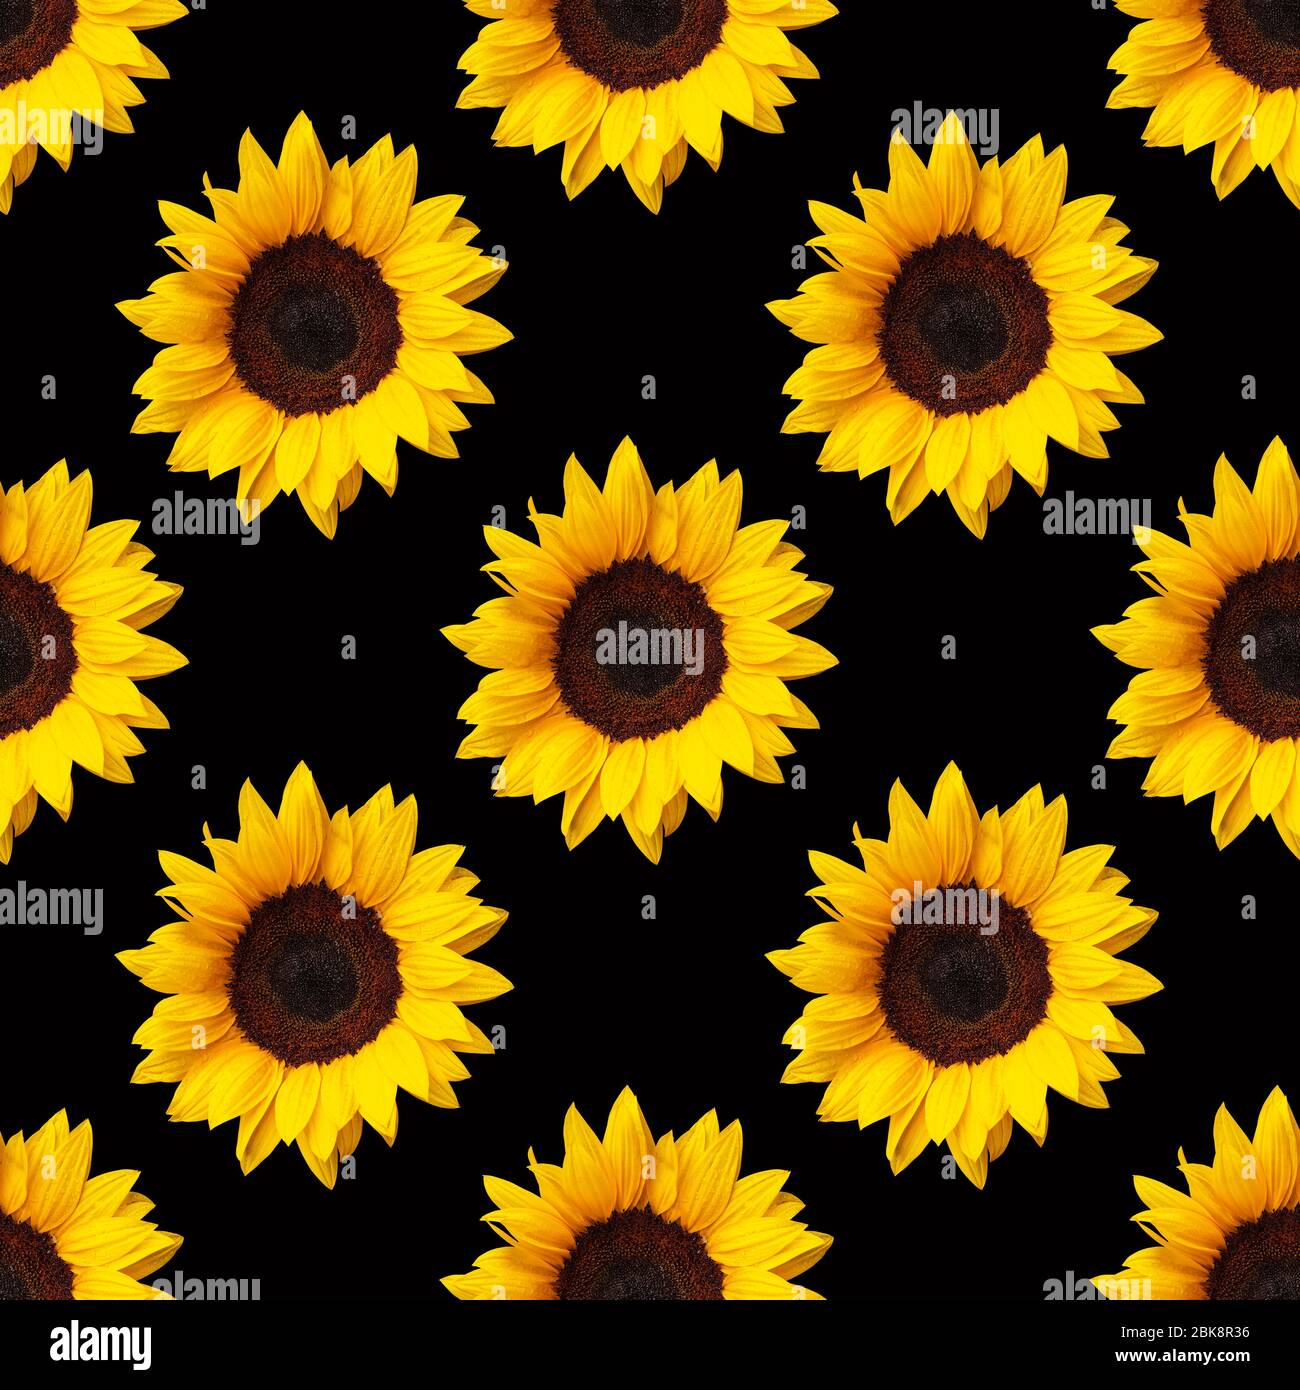 sunflowers flowers seamless pattern design on black background can be tiled 2BK8R36